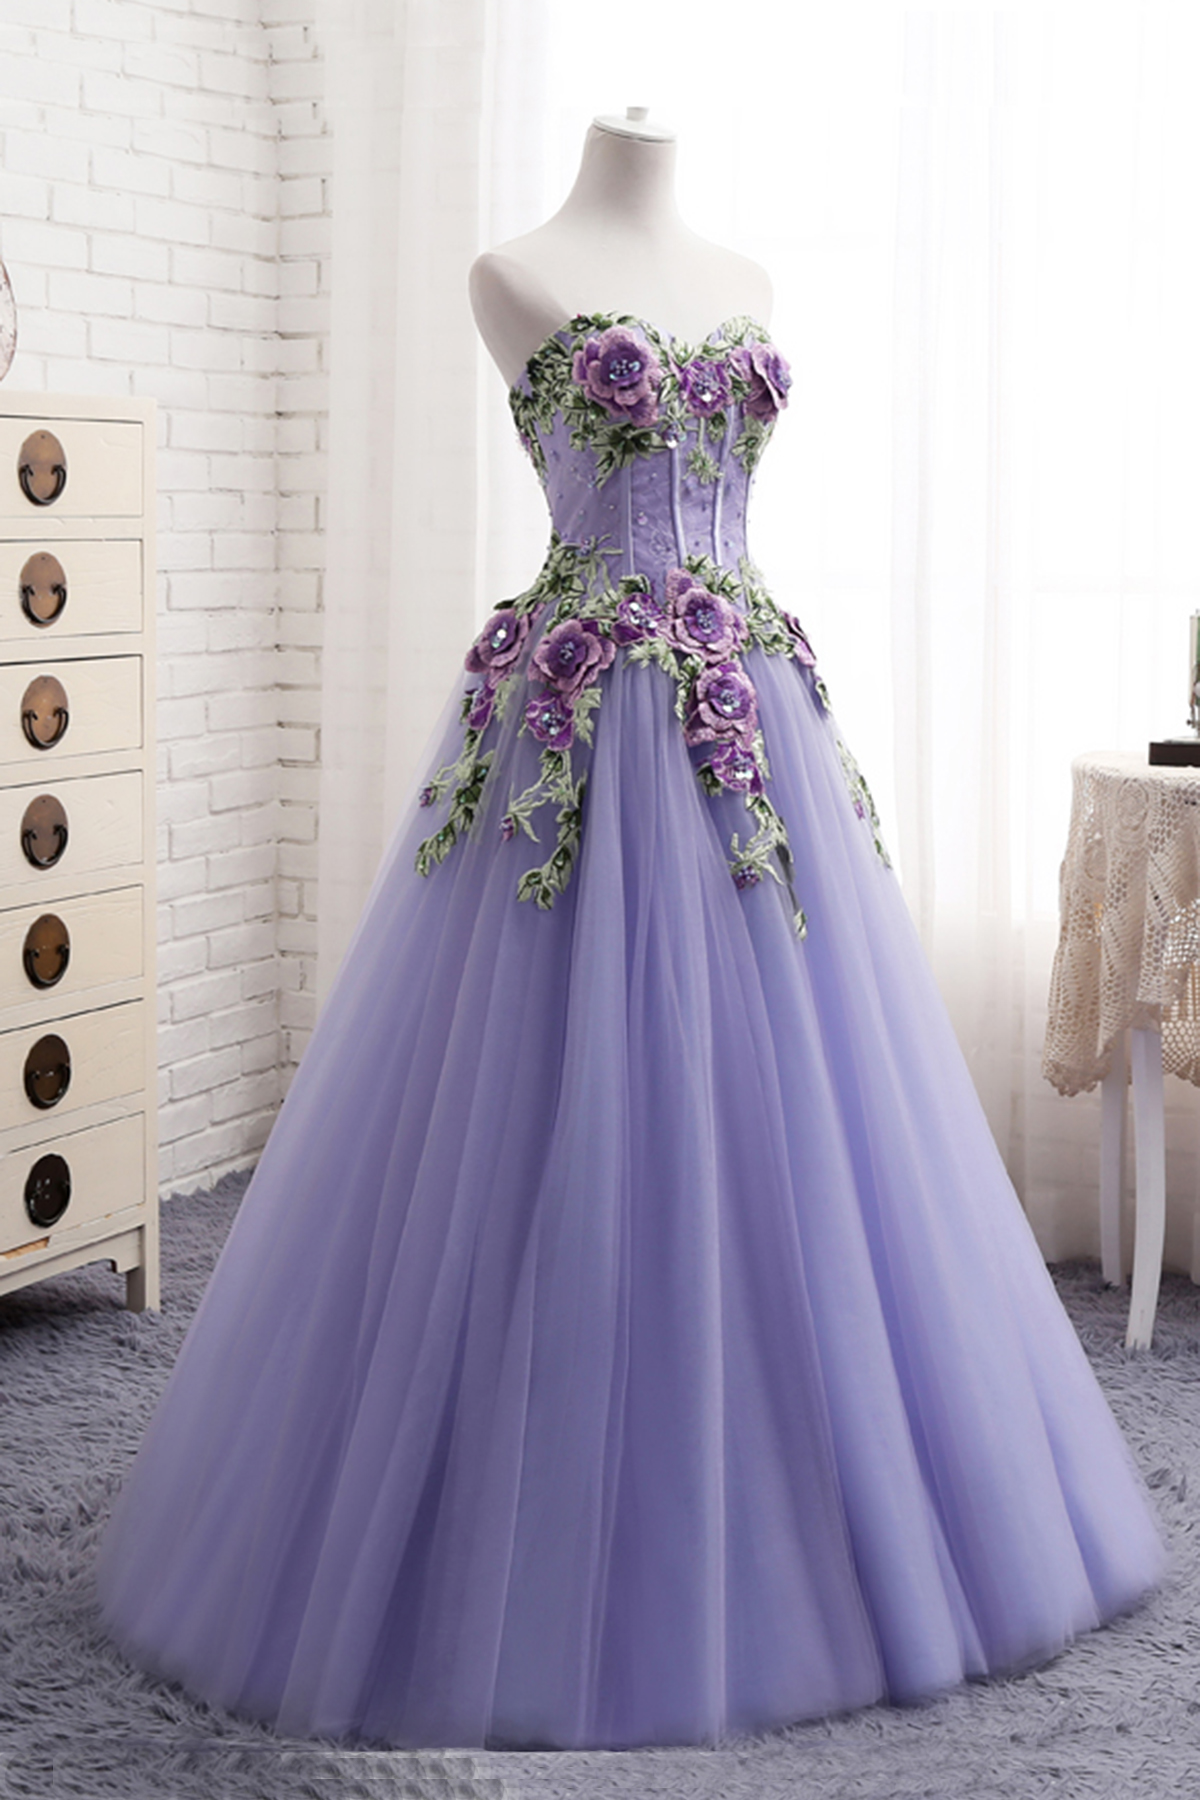 9ac37cfc1f6 Popular Sweetheart Lavender Tulle Long 3D Flower Evening Dress ...